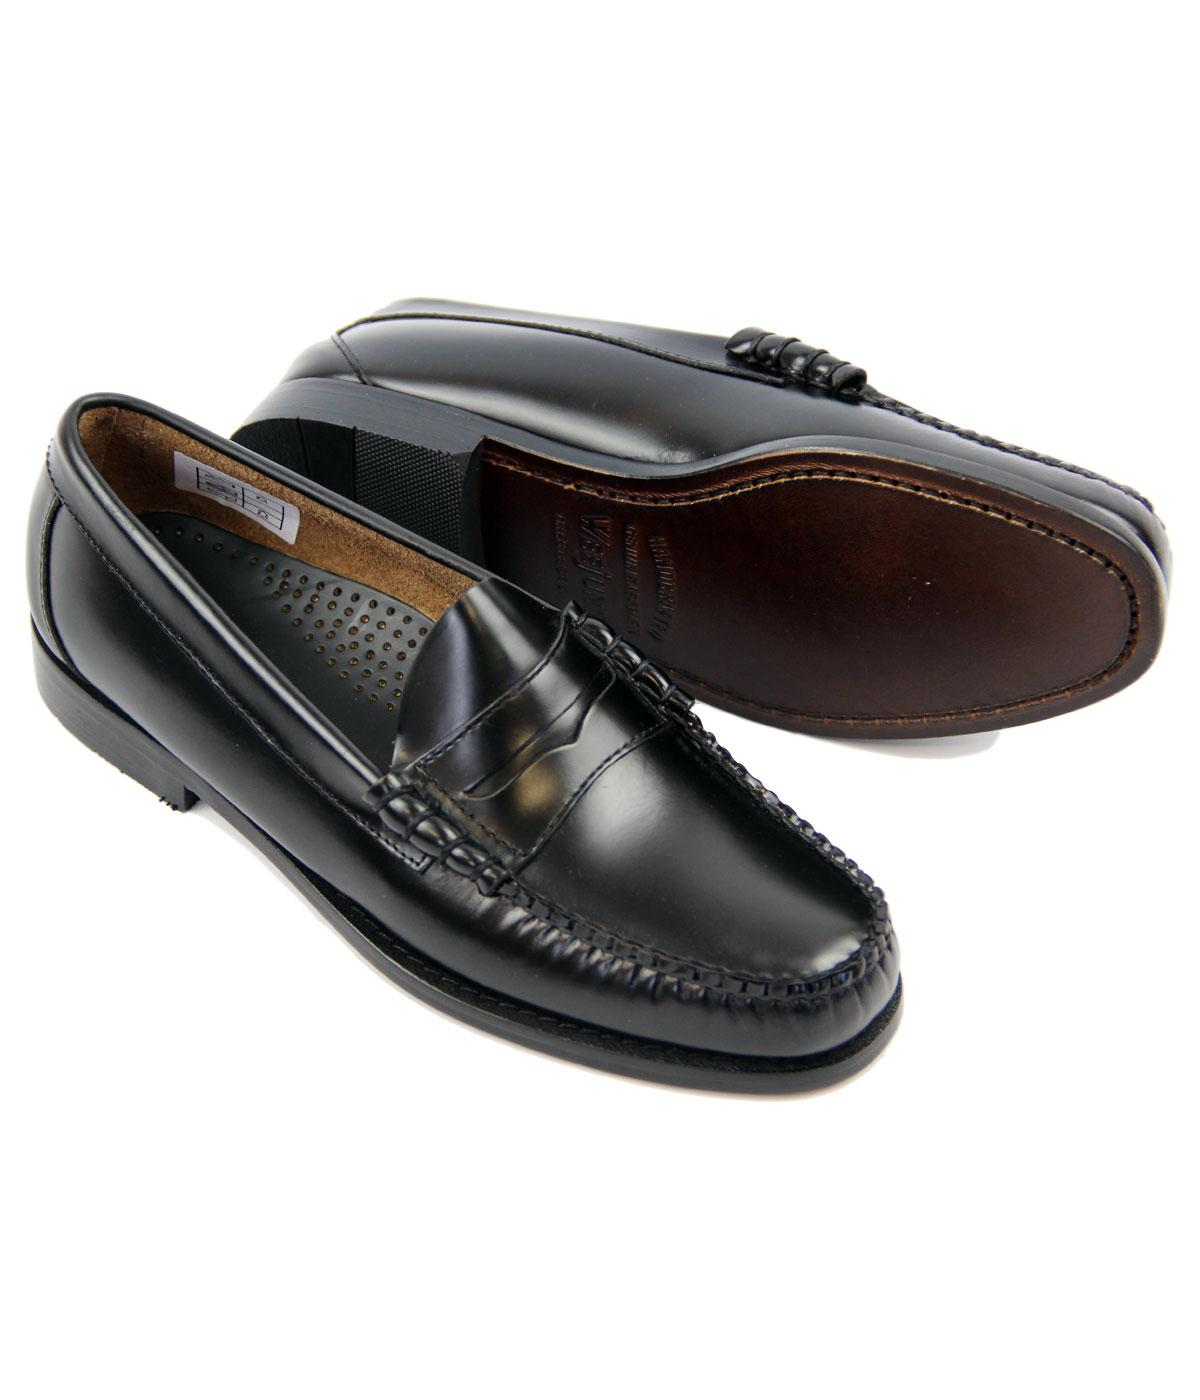 BASS WEEJUNS Larson Retro Mod Penny Loafer Shoes in Black ...